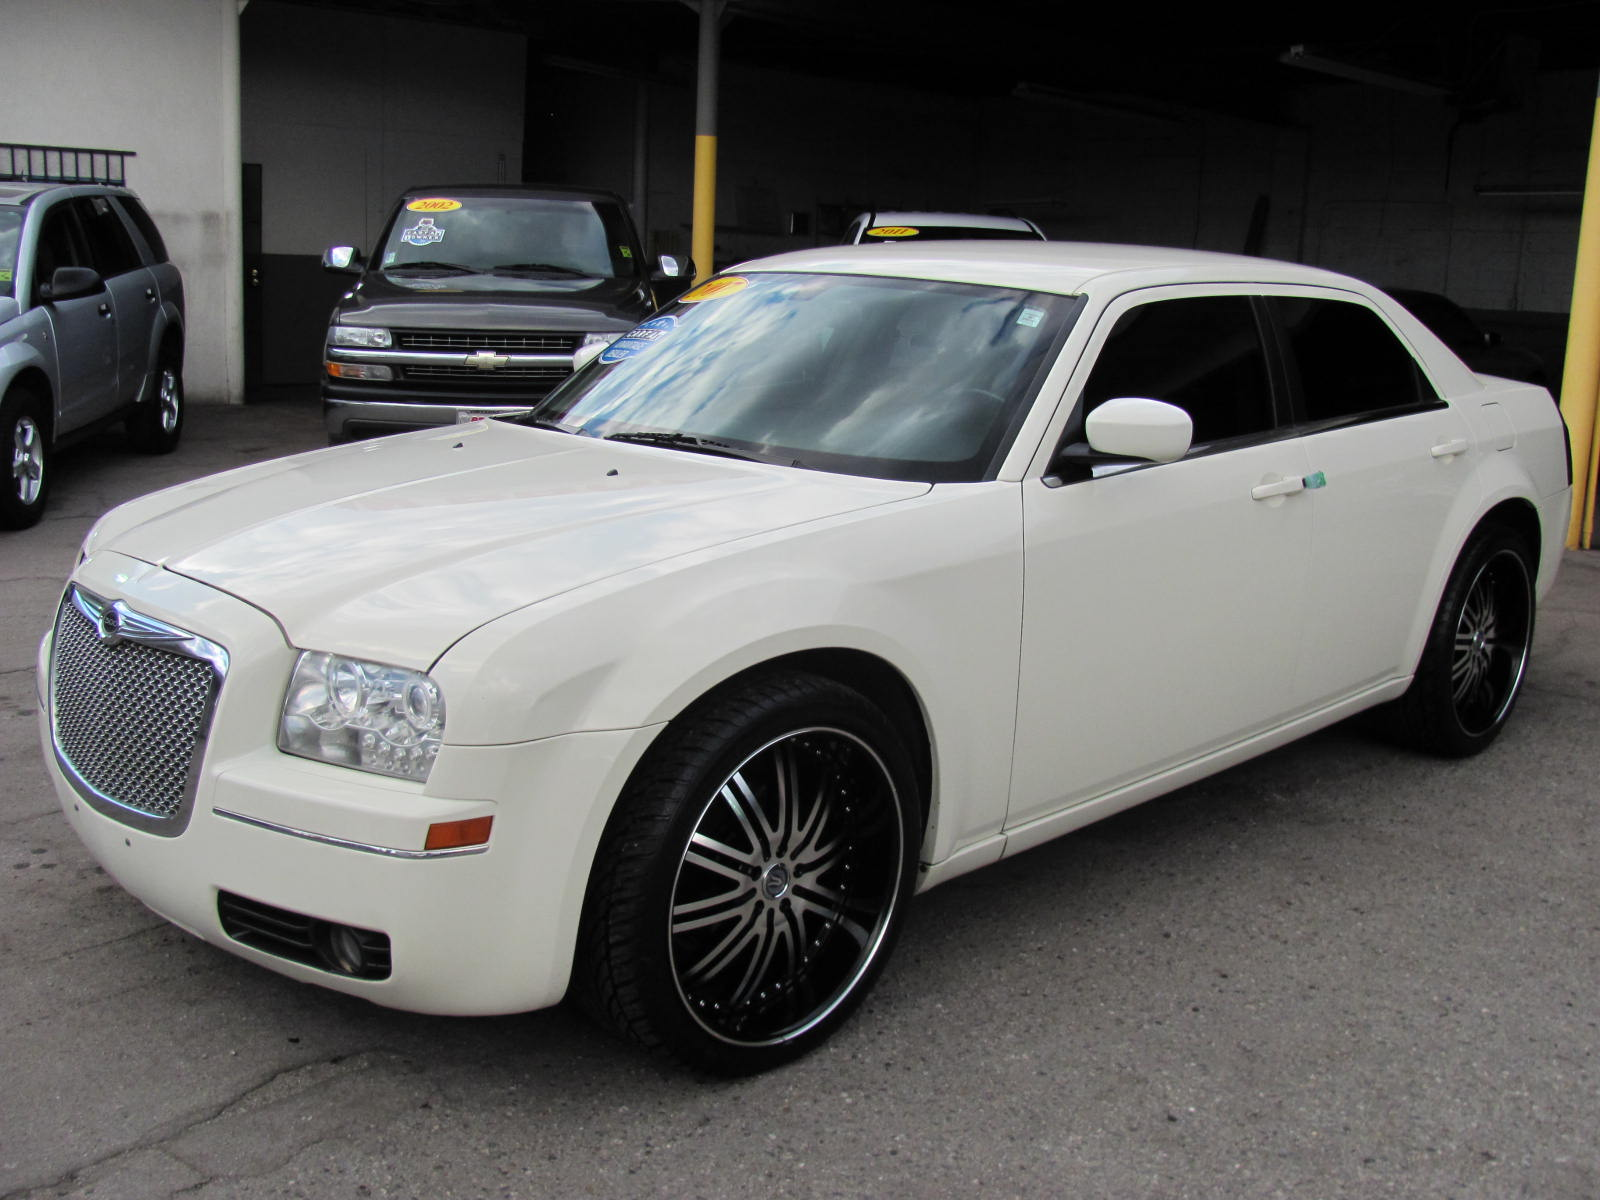 2007 Chrysler 300 #3